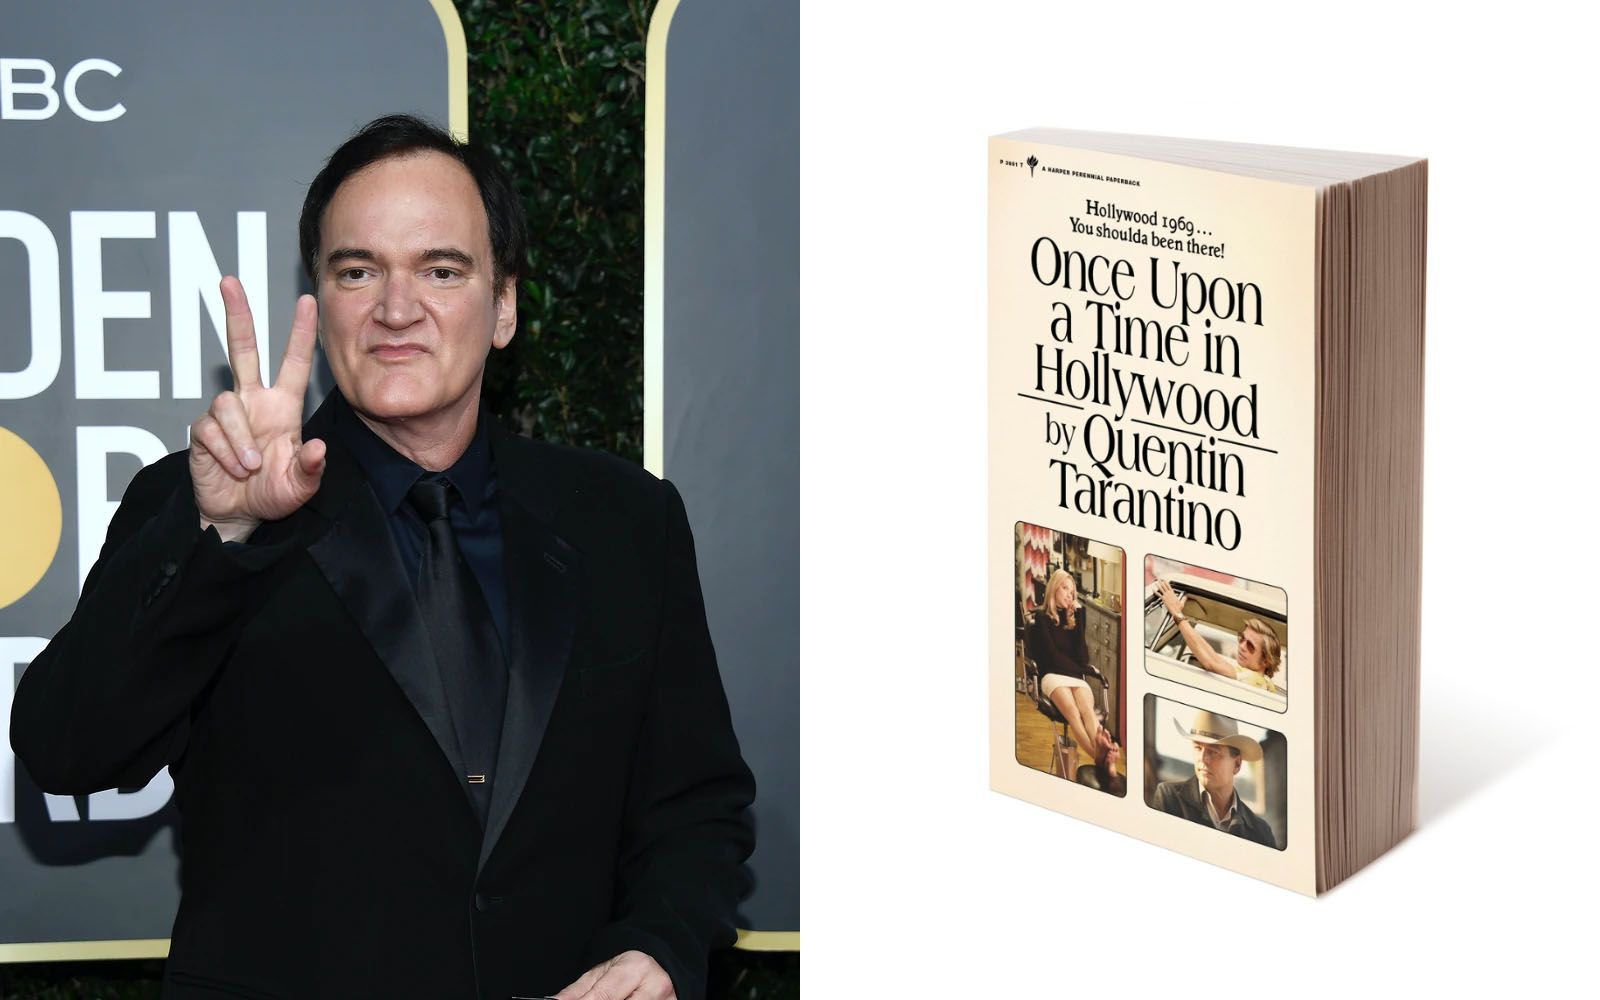 Upon in tarantino once a time hollywood Quentin Tarantino